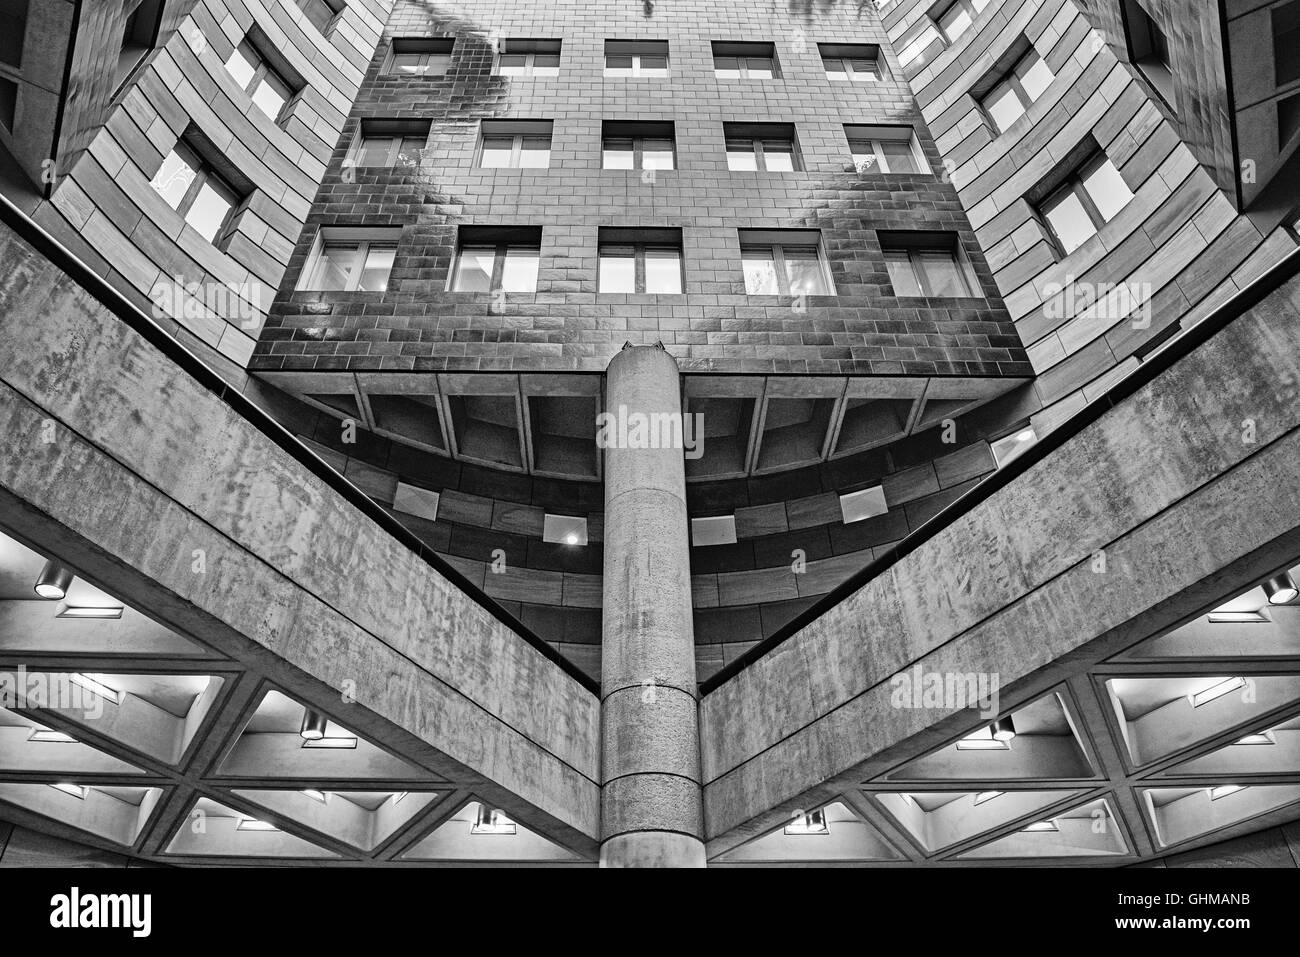 No 1 The Poultry in the Financial District monochrome building London, England UK - Stock Image